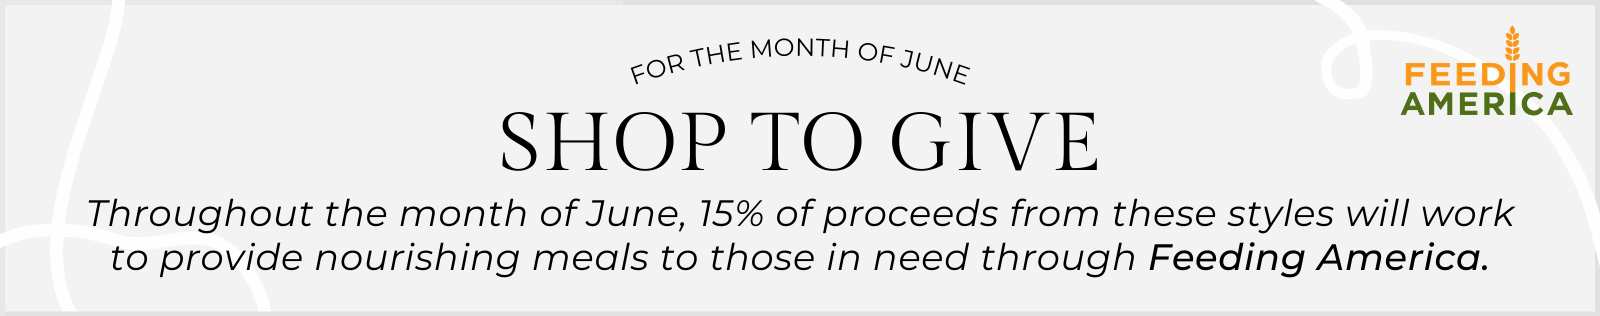 Throughout the month of June, 15% of proceeds from select Charles Albert jewelry will work to provide nourishing meals to those in need through Feeding America.